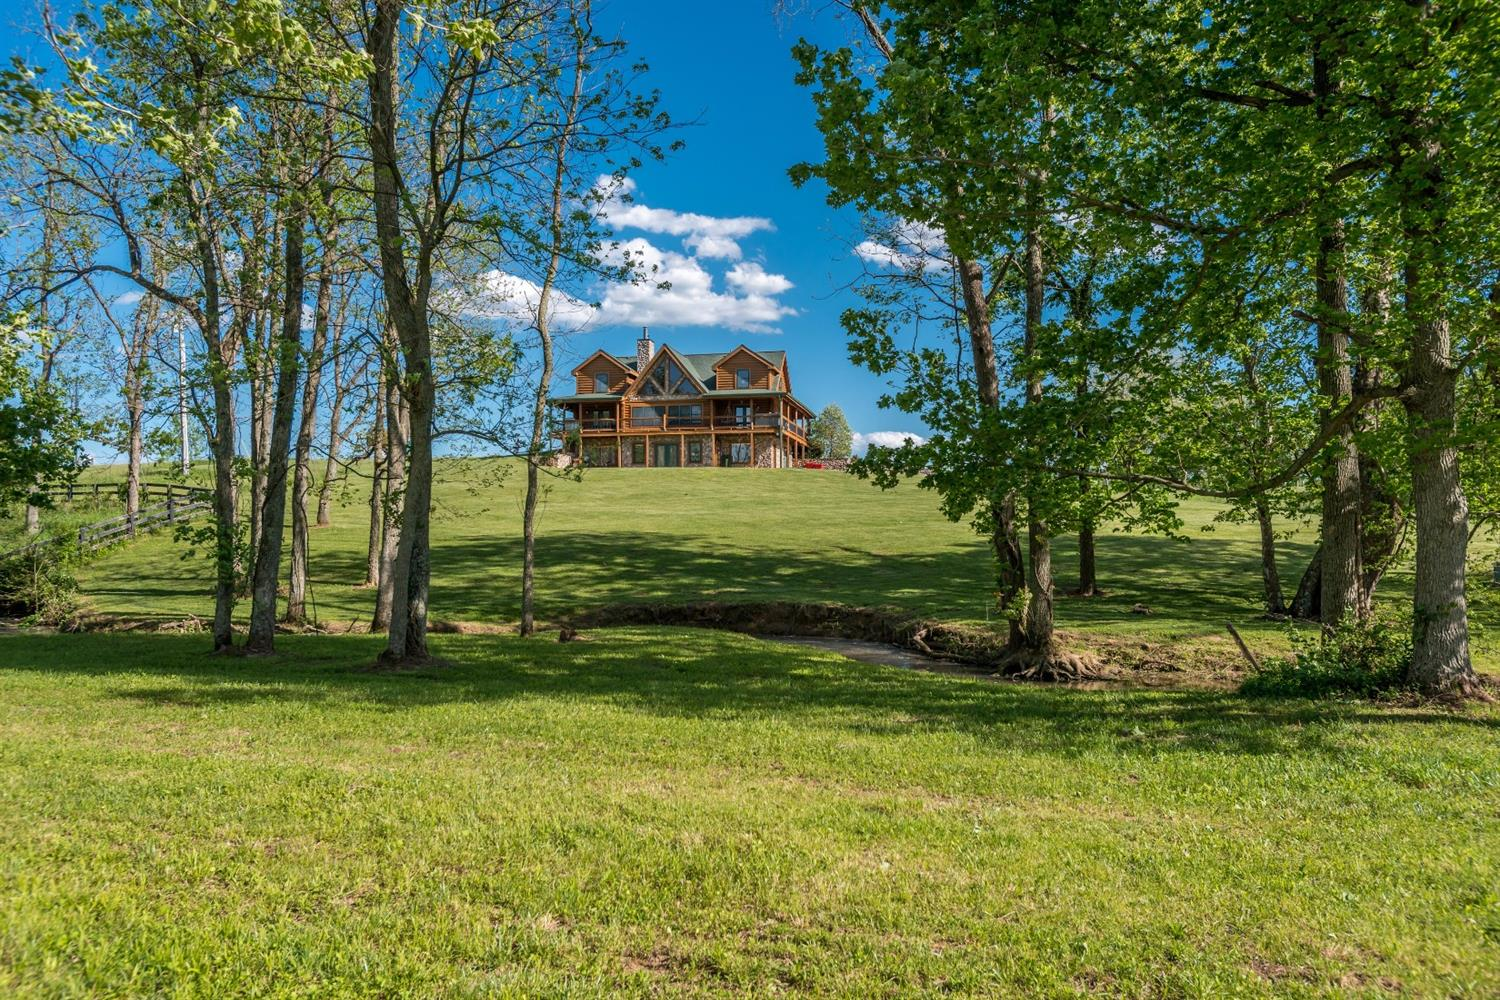 Plan%20your%20staycation%20in%20this%20gorgeous%20custom%20log%20home%20on%2015%20acres!%20Complete%20with%20extensive%20wrap%20around%20porches,%20gorgeous%20views%20of%20the%20gentle%20rolling%20pastures,%20pond,%20and%20stream,%20the%20outside%20is%20as%20inviting%20as%20the%20inside!%20The%20cracker-barrel-like%20stone%20fireplace%20is%20the%20centerpiece%20of%20this%20spectacular%20home!%20The%20geothermal%20system%20keeps%20it%20eco-friendly%20and%20economical!%20%20First%20floor%20master%20and%20utility%20room%20offers%20this%20floor%20plan%20versatility!%20A%20mother-in-law%20suite%20complete%20with%20kitchenette%20and%20fisher%20wood%20burning%20stove%20is%20accessible%20two%20ways%20in%20the%20walk%20out%20finished%20basement.%20All%20of%20this%20PLUS%20a%2052'%20x%2032'%20insulated%20shop%20with%20electric%20and%20water%20access%20and%2012'%20x%2052'%20wood%20shed!%20This%20Cabin%20has%20all%20the%20space%20you%20could%20need%20with%20a%20level%20of%20detail%20that%20you%20rarely%20find!%203%20miles%20from%20I-64%20puts%20you%20just%20minutes%20from%20Frankfort,%20Lexington,%20Louisville%20and%20Georgetown!!!